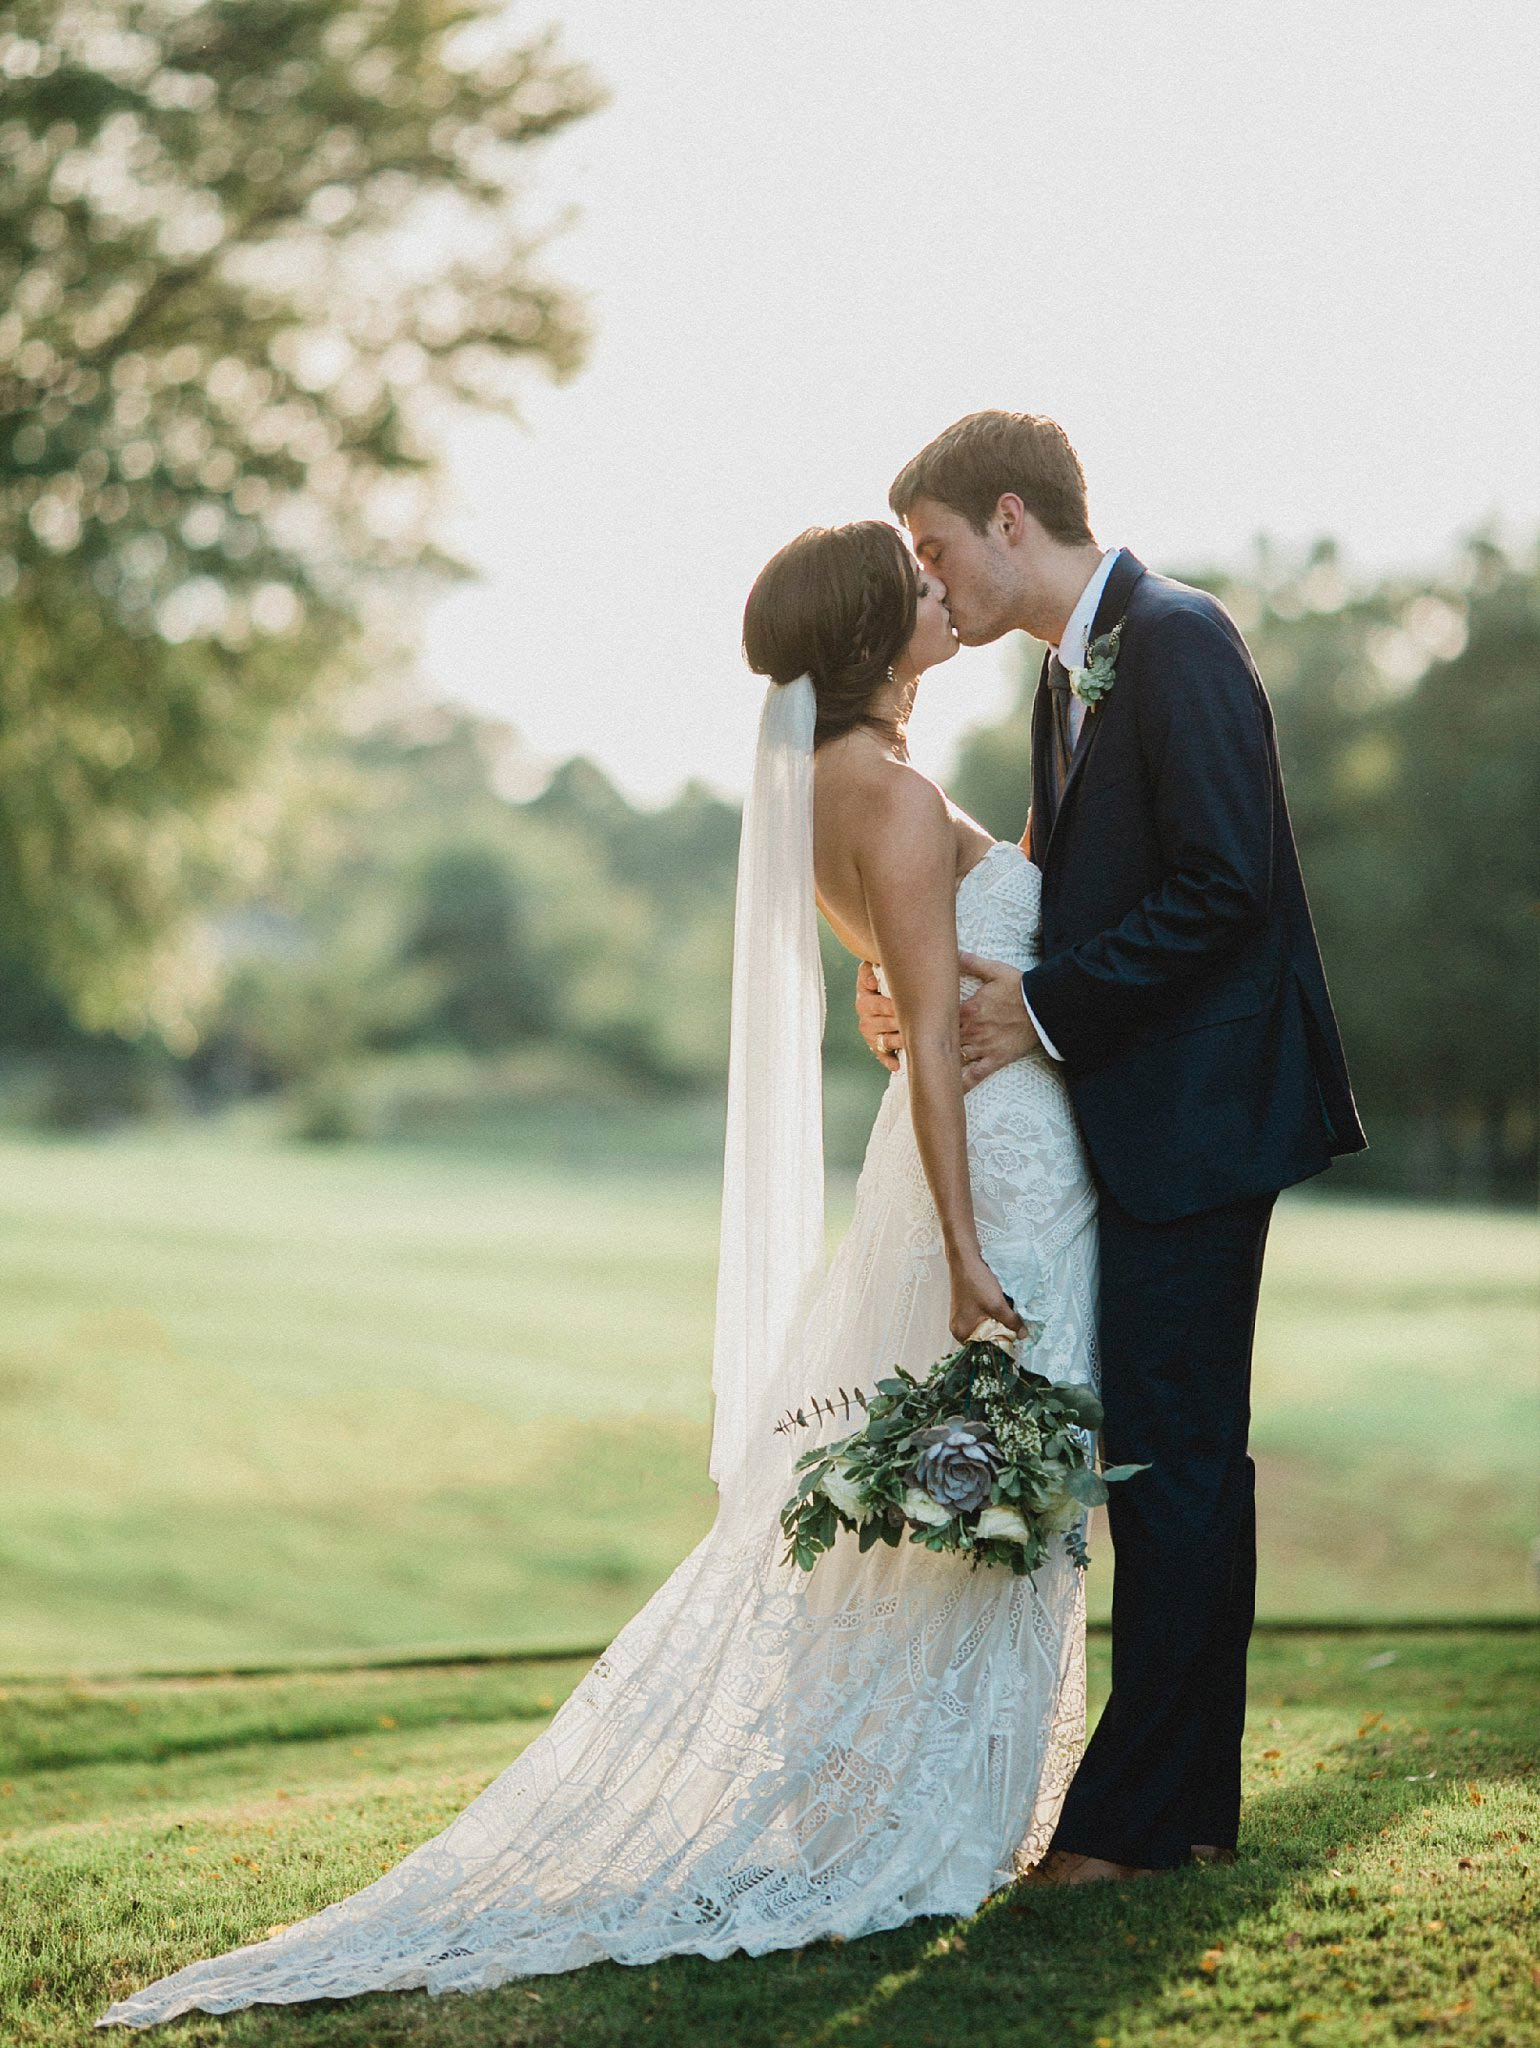 Bride wearing a lace boho dress kissing the groom while holding a greenery and succulent bouquet